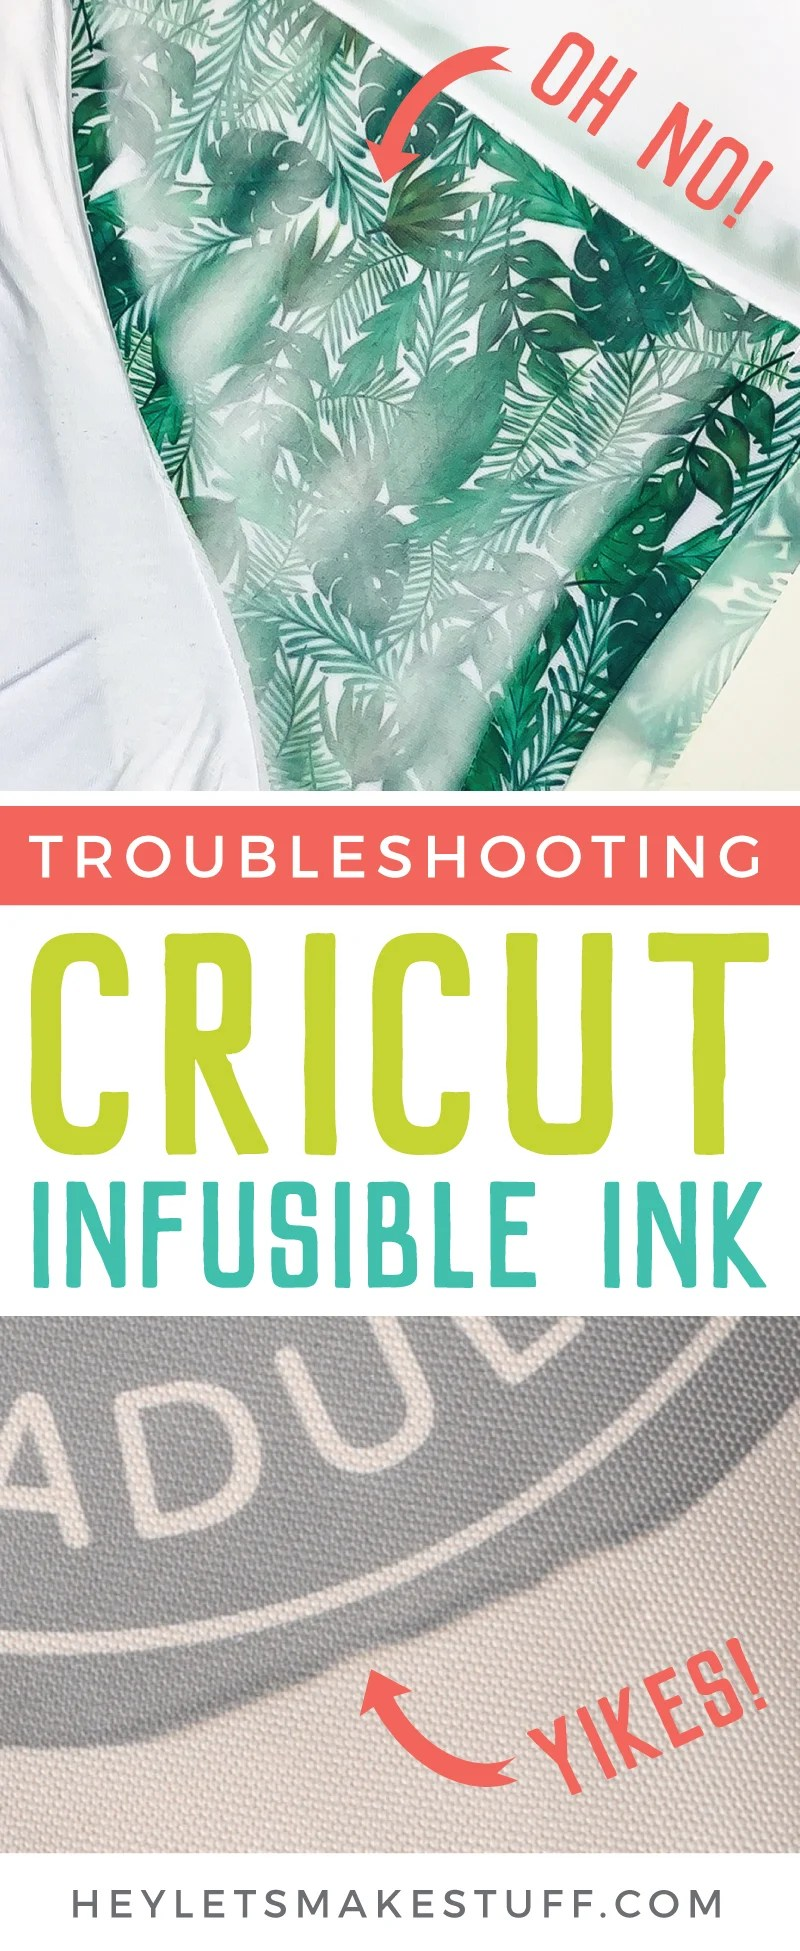 If you're having problems with ghosting, fading, splotching, or shifting, this guide will help you in troubleshooting Cricut Infusible Ink. Stop wasting expensive materials and learn how to get your projects right, the first time. via @heyletsmakestuf